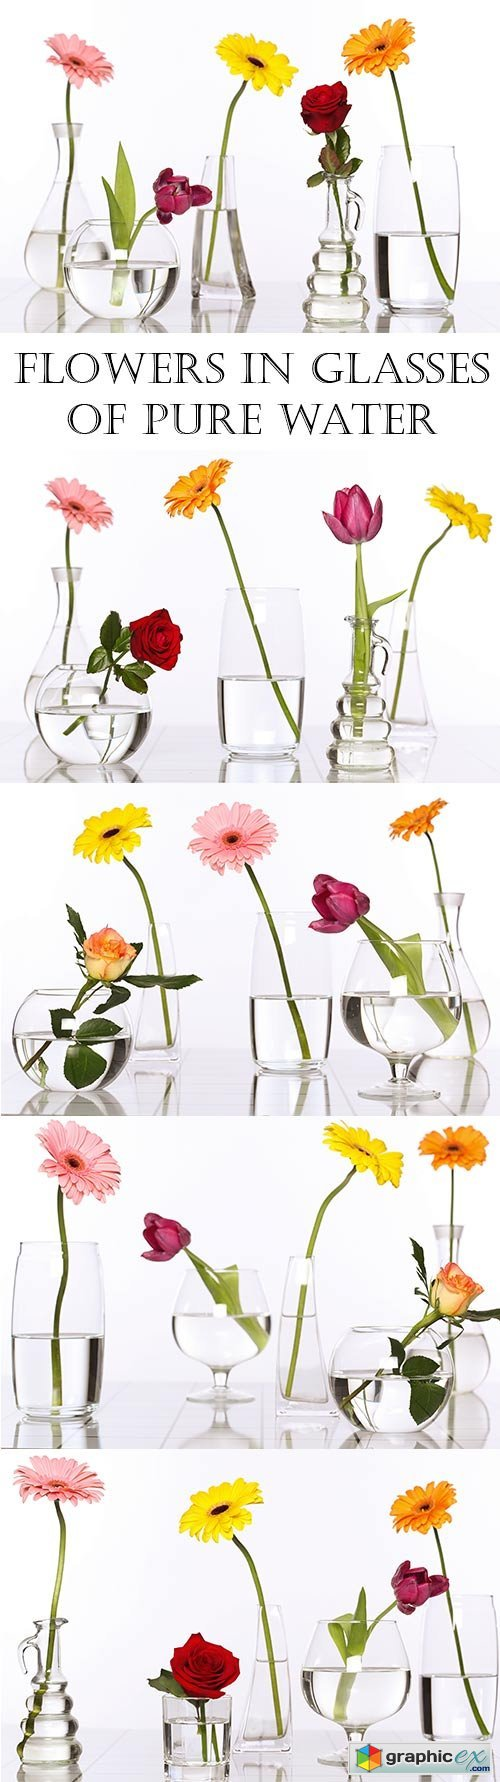 Flowers in glasses of pure water